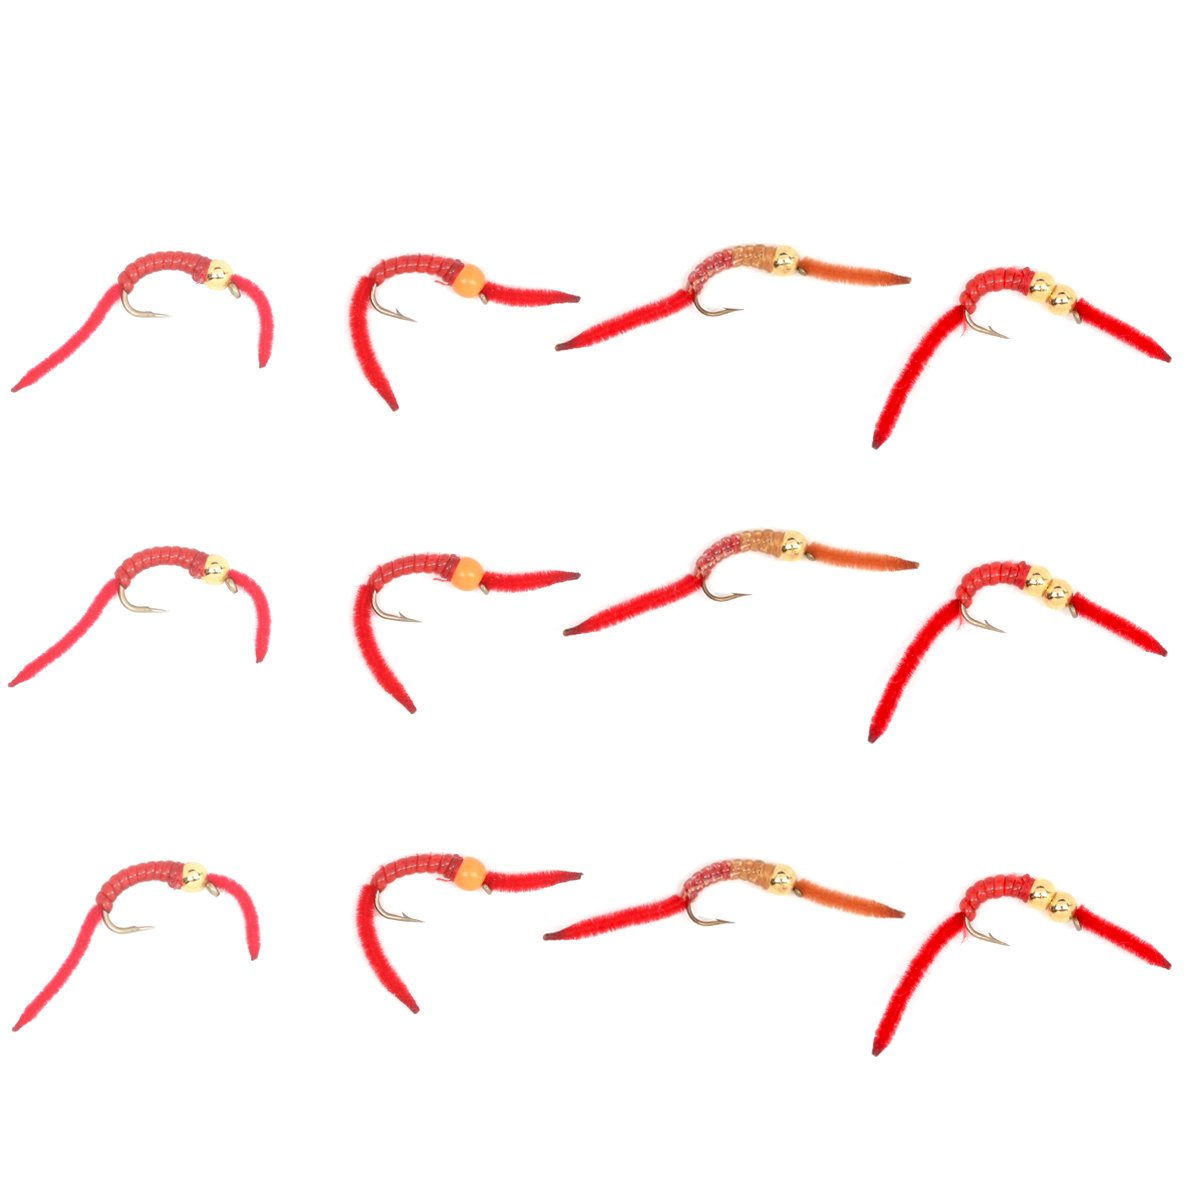 The Fly Fishing Place Trout Fly Assortment - San Juan Worm Power Bead 1 Dozen Wet Nymph Fly Fishing Flies - Hook Size 10-3 Each of 4 Patterns by The Fly Fishing Place